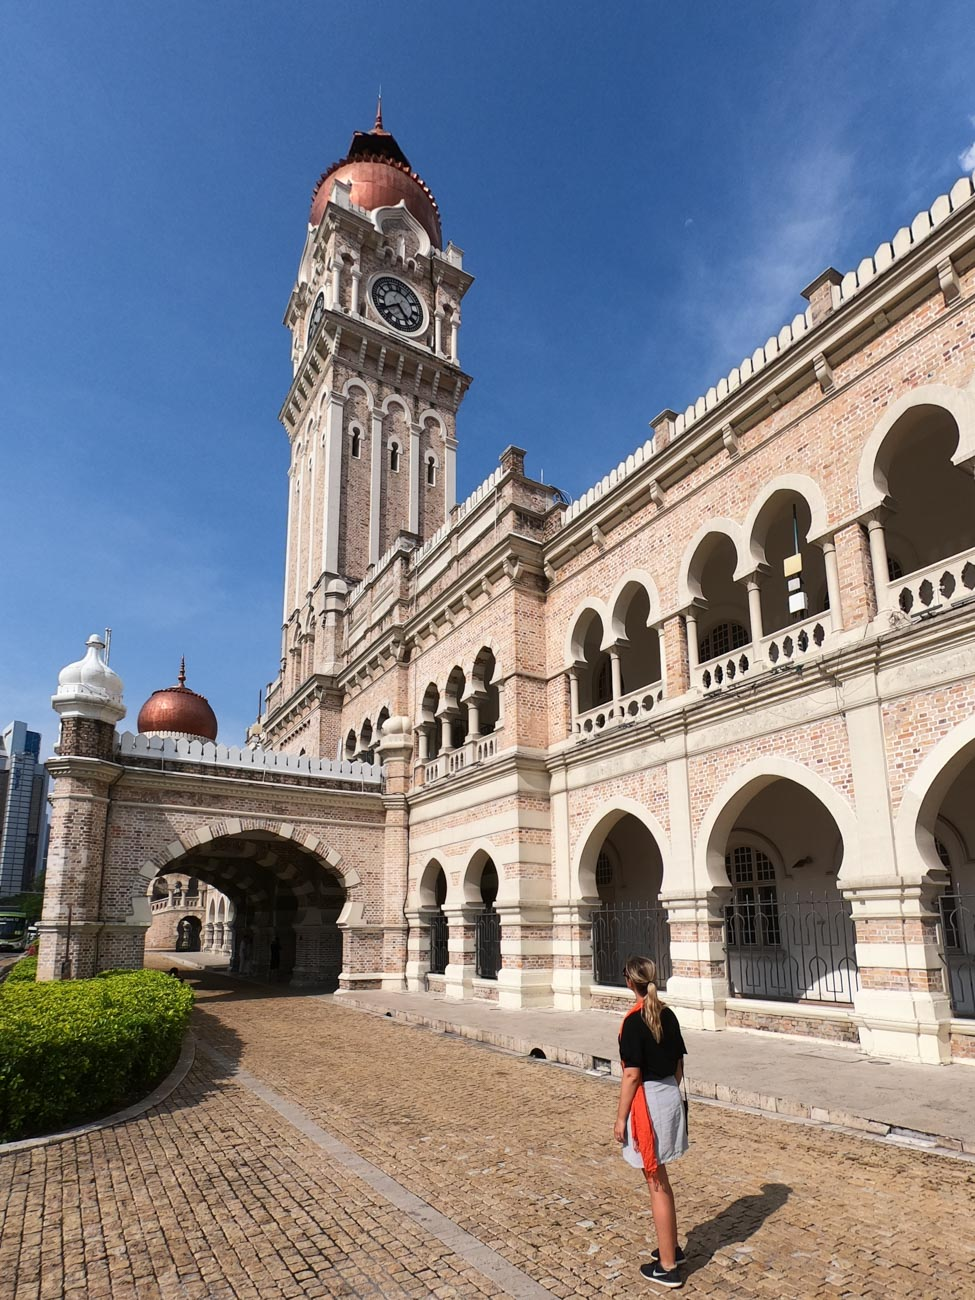 The Sultan Abdul Samad building - things to do in Kuala Lumpur